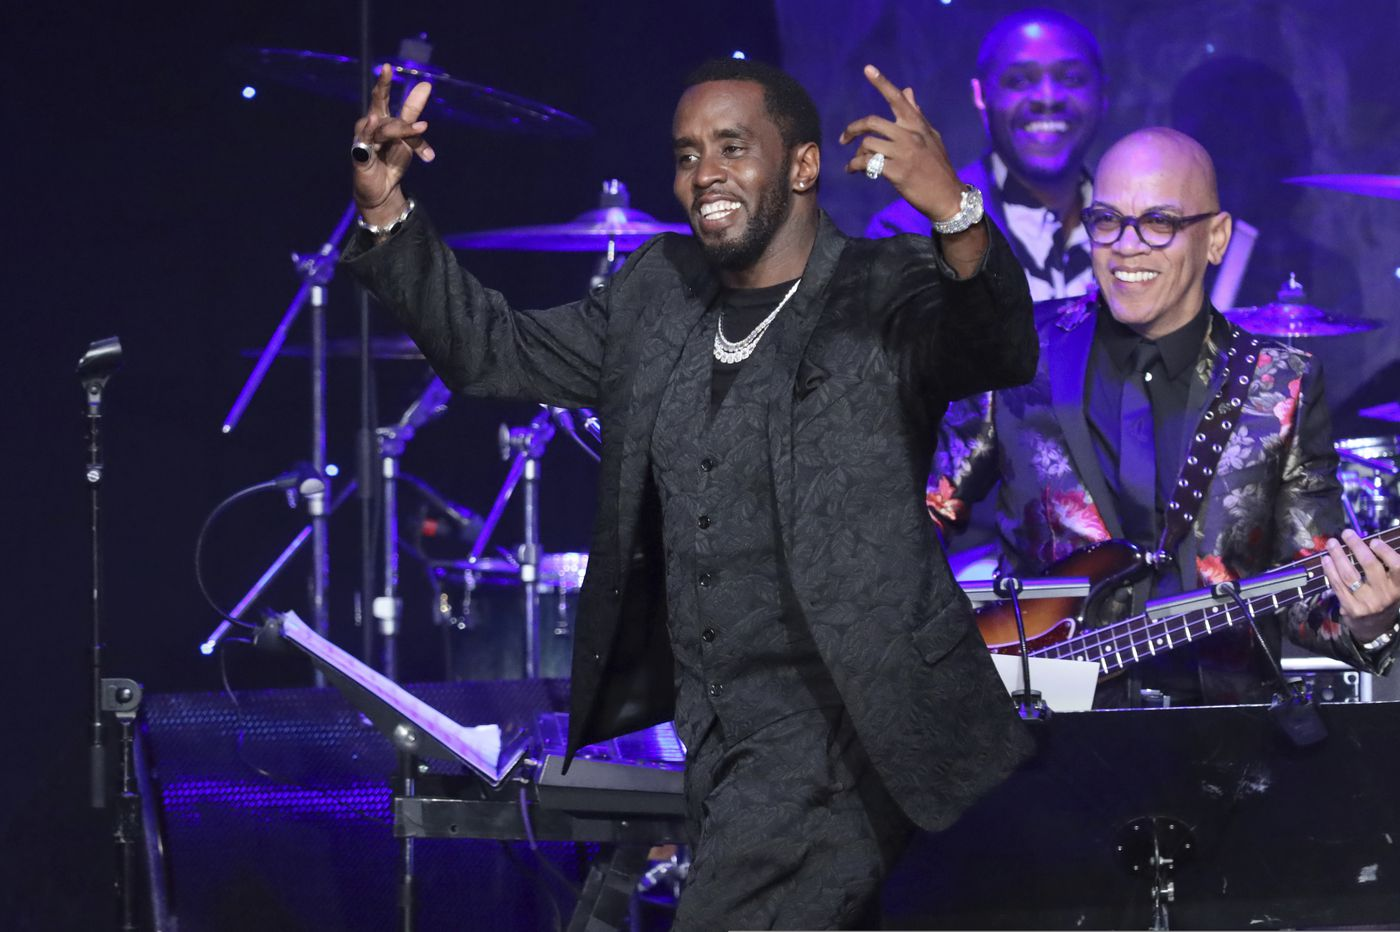 Diddy calls out Grammys in fiery speech at Clive Davis gala